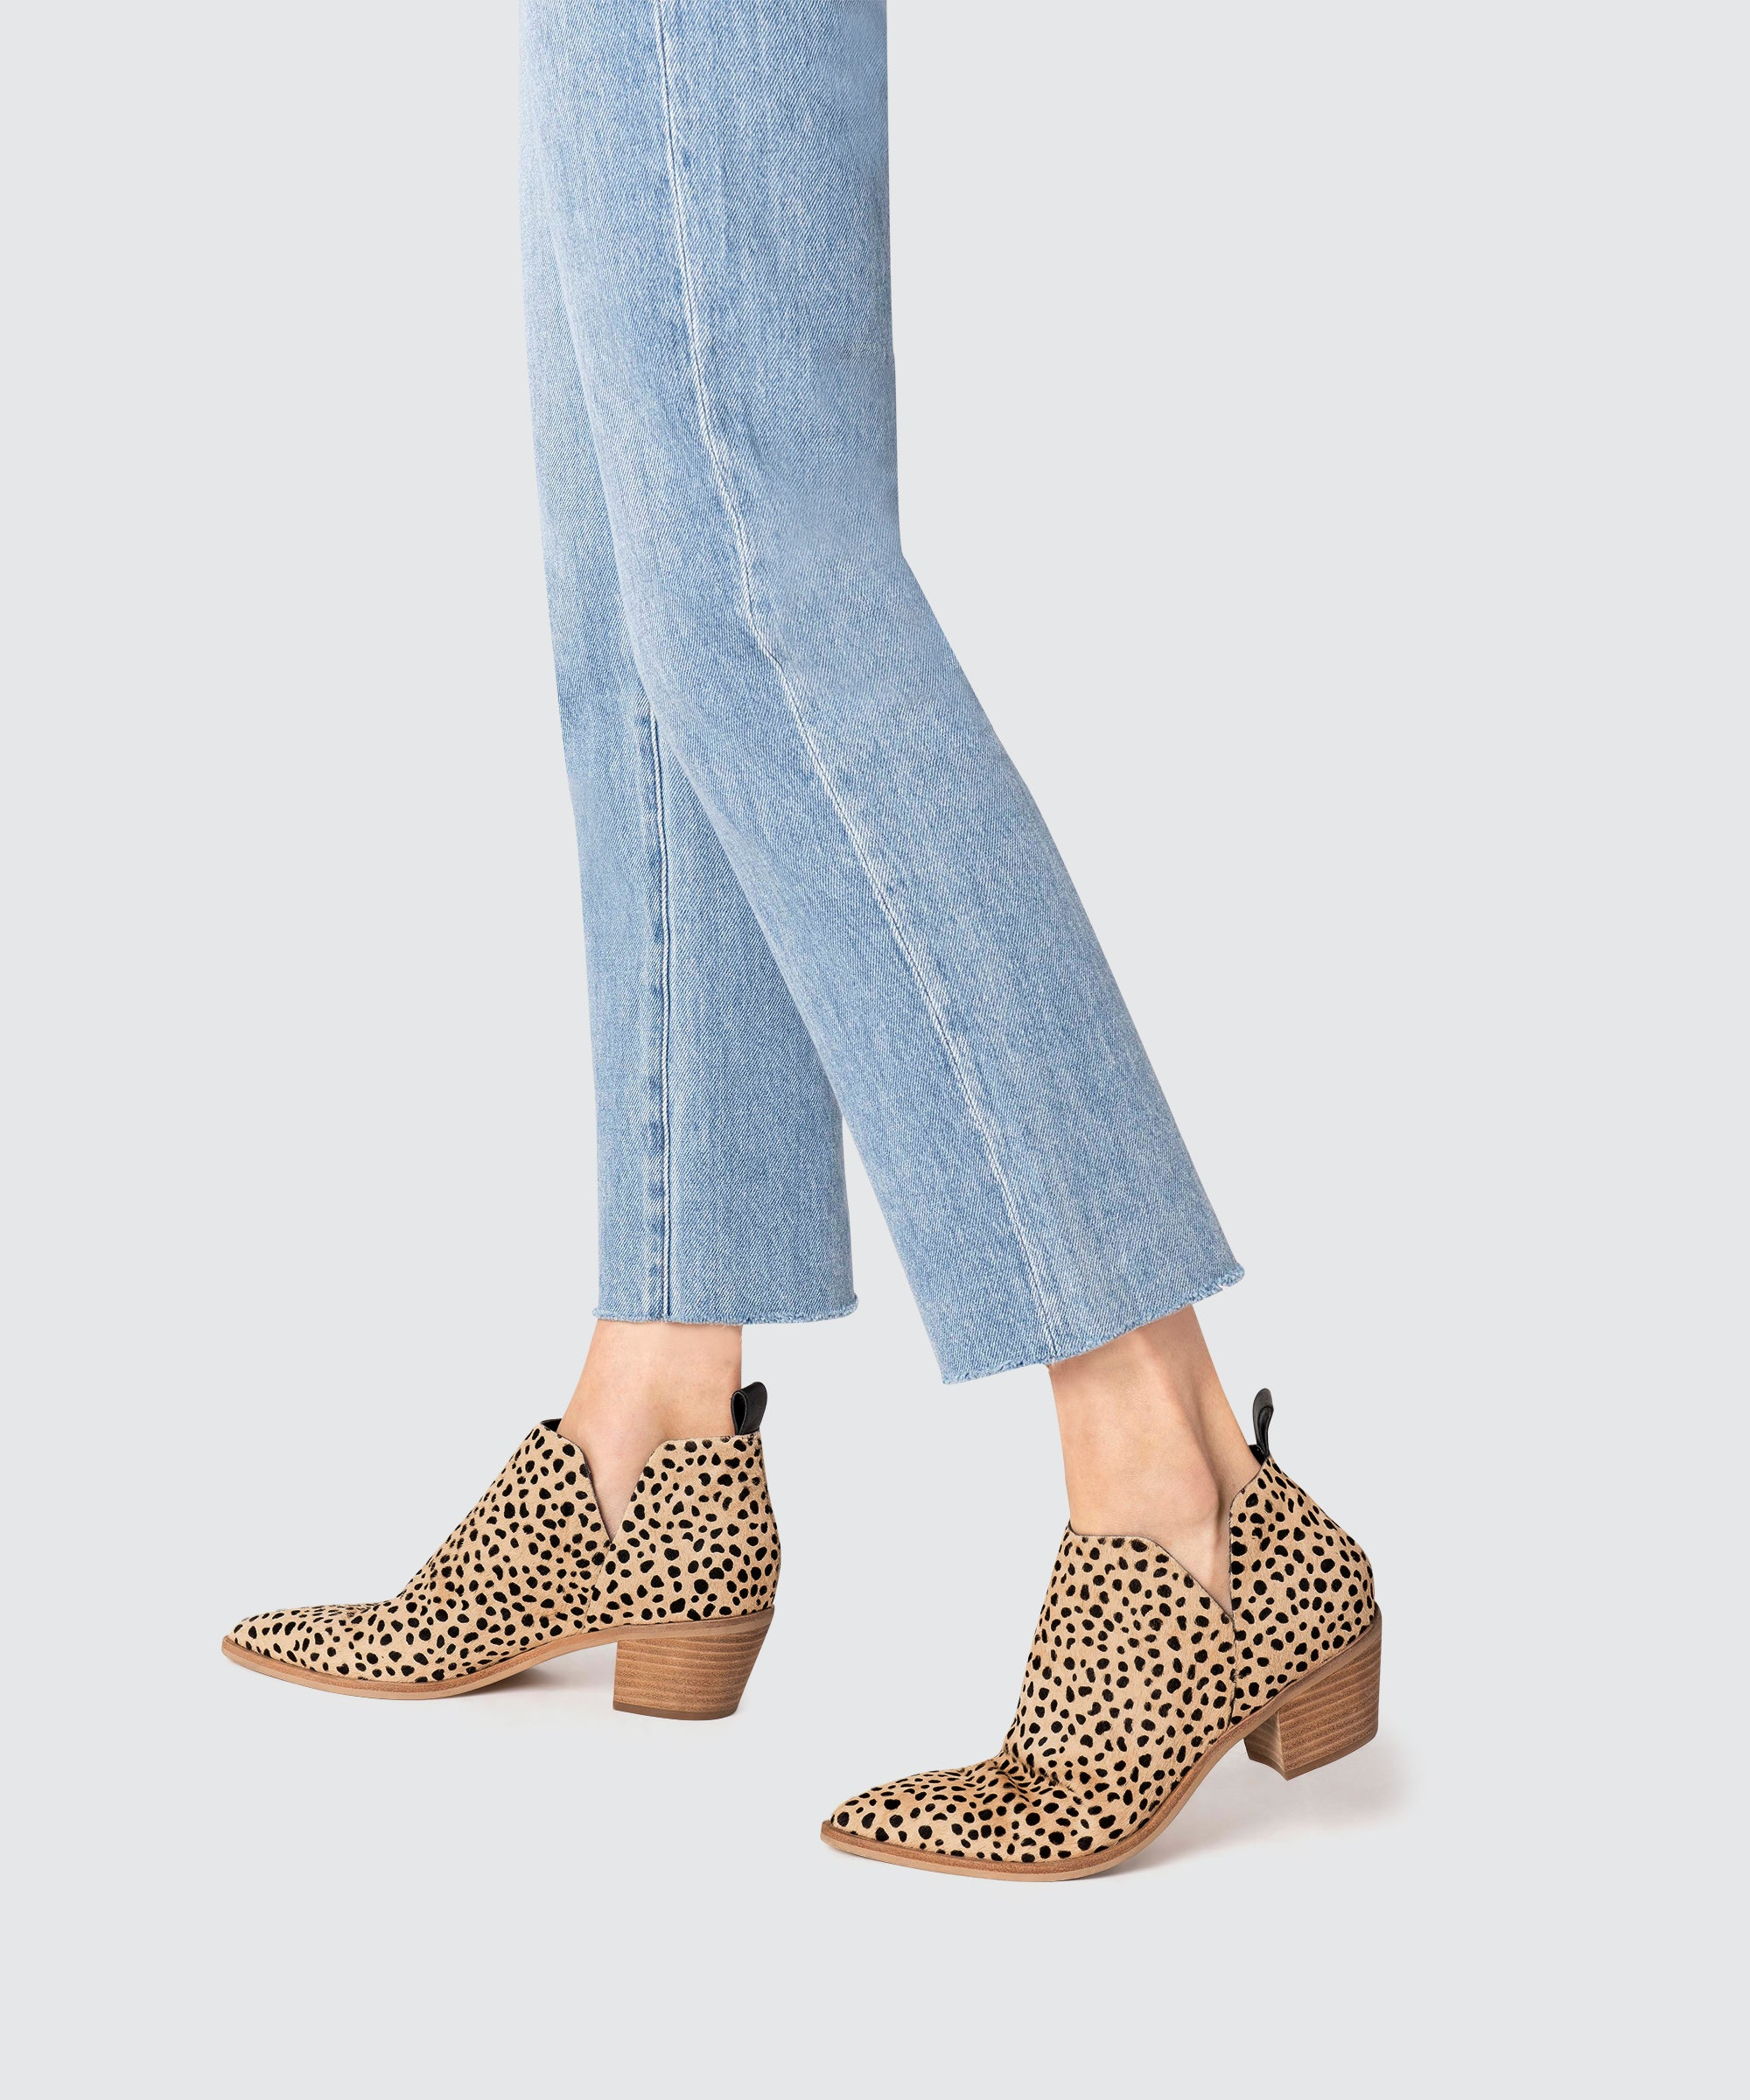 SONNI BOOTIES IN LEOPARD – Dolce Vita